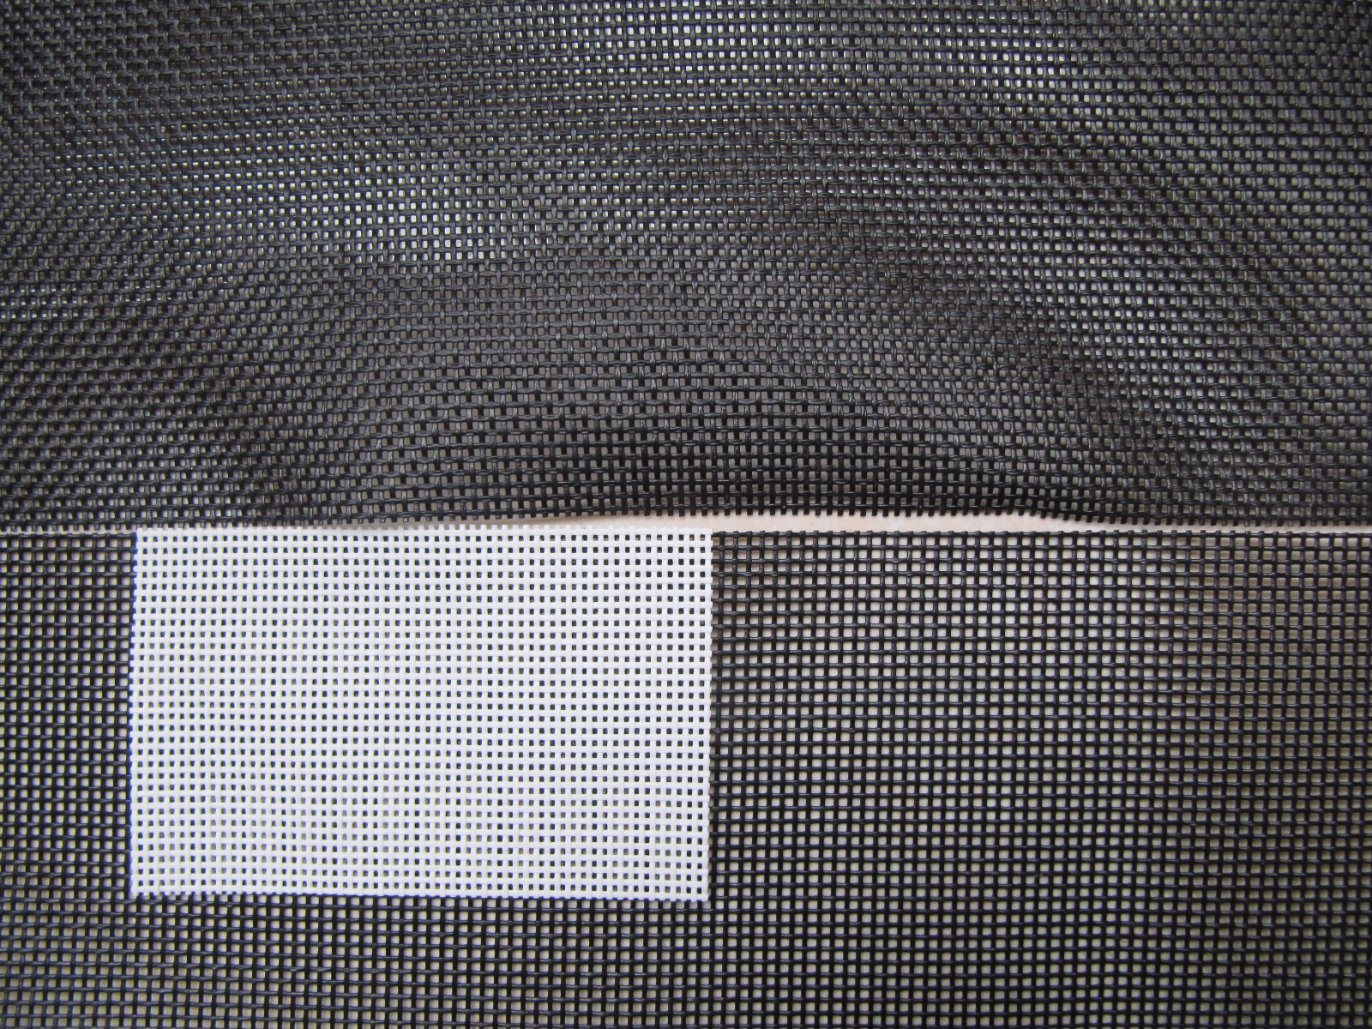 16*18 Fibeglass Invisible Window Screen Insect Screen High Quality Anping Factory